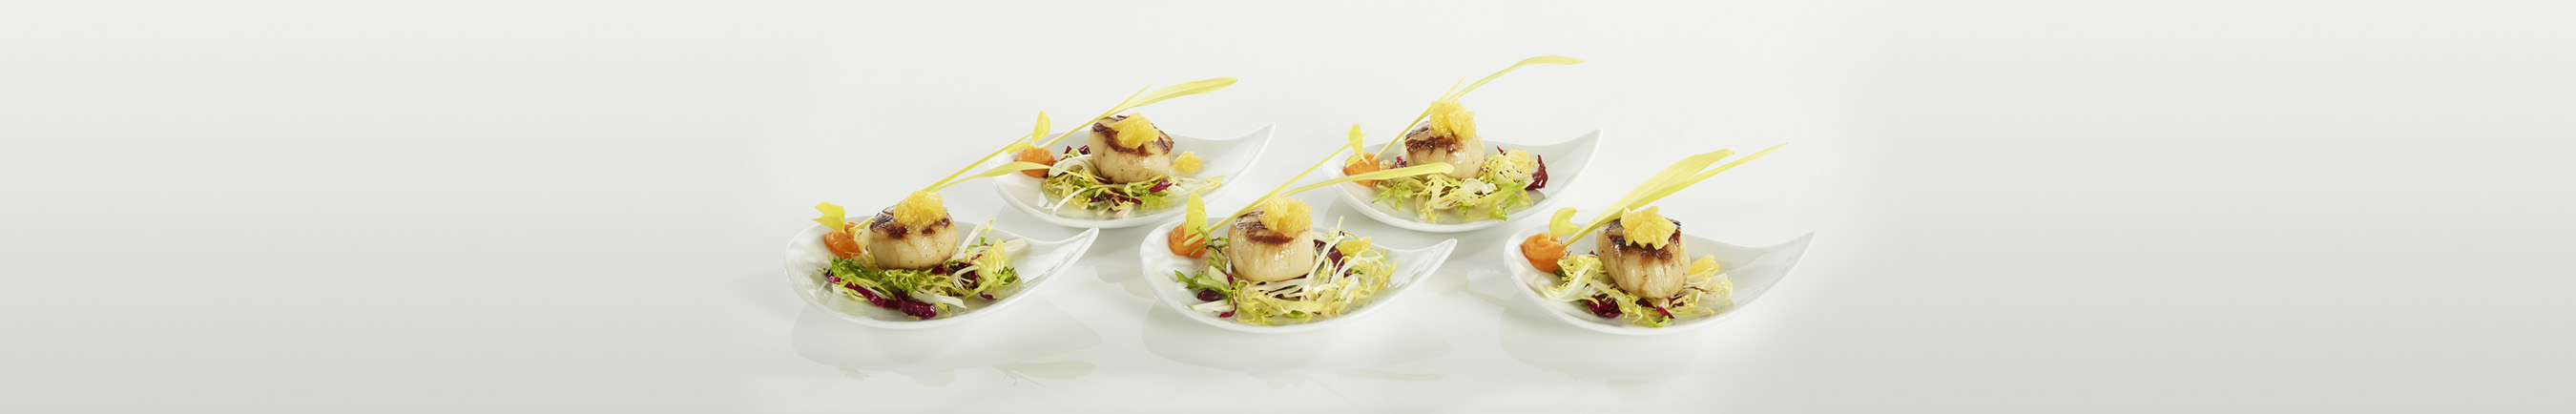 slideshow-scallops